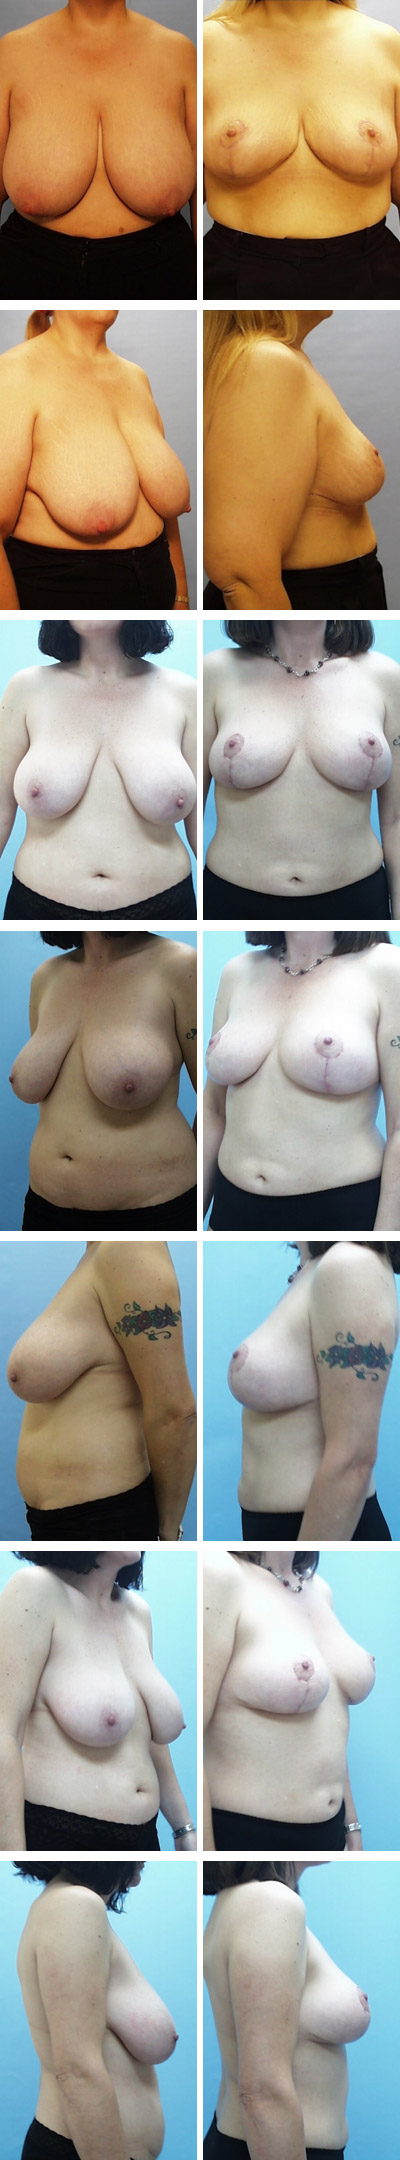 Breast Reduction Before and After Sets